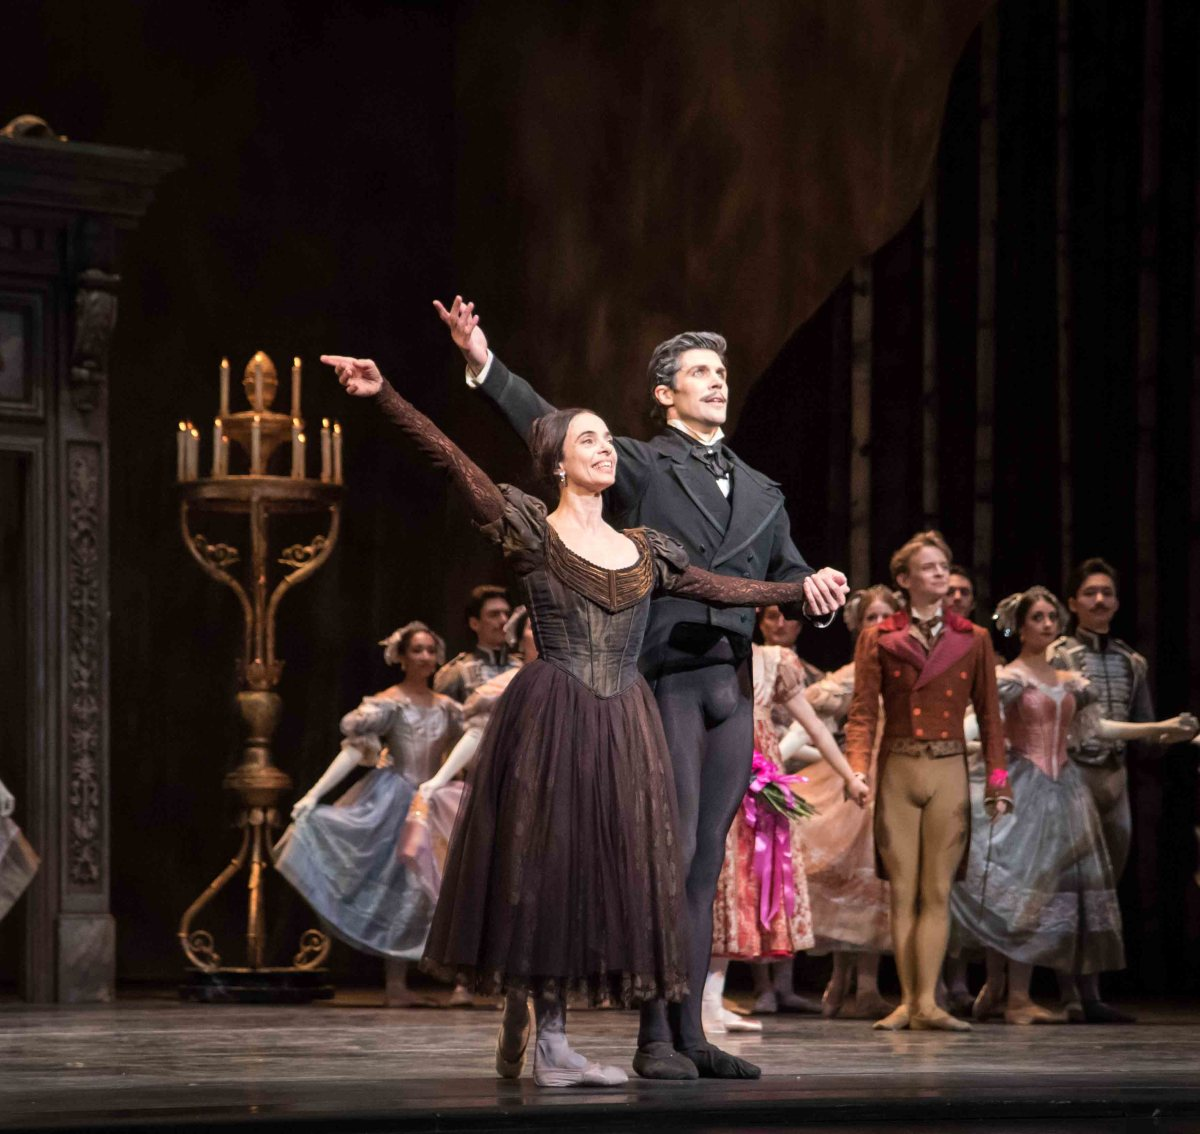 Alessandra Ferri and Roberto Bolle Onegin